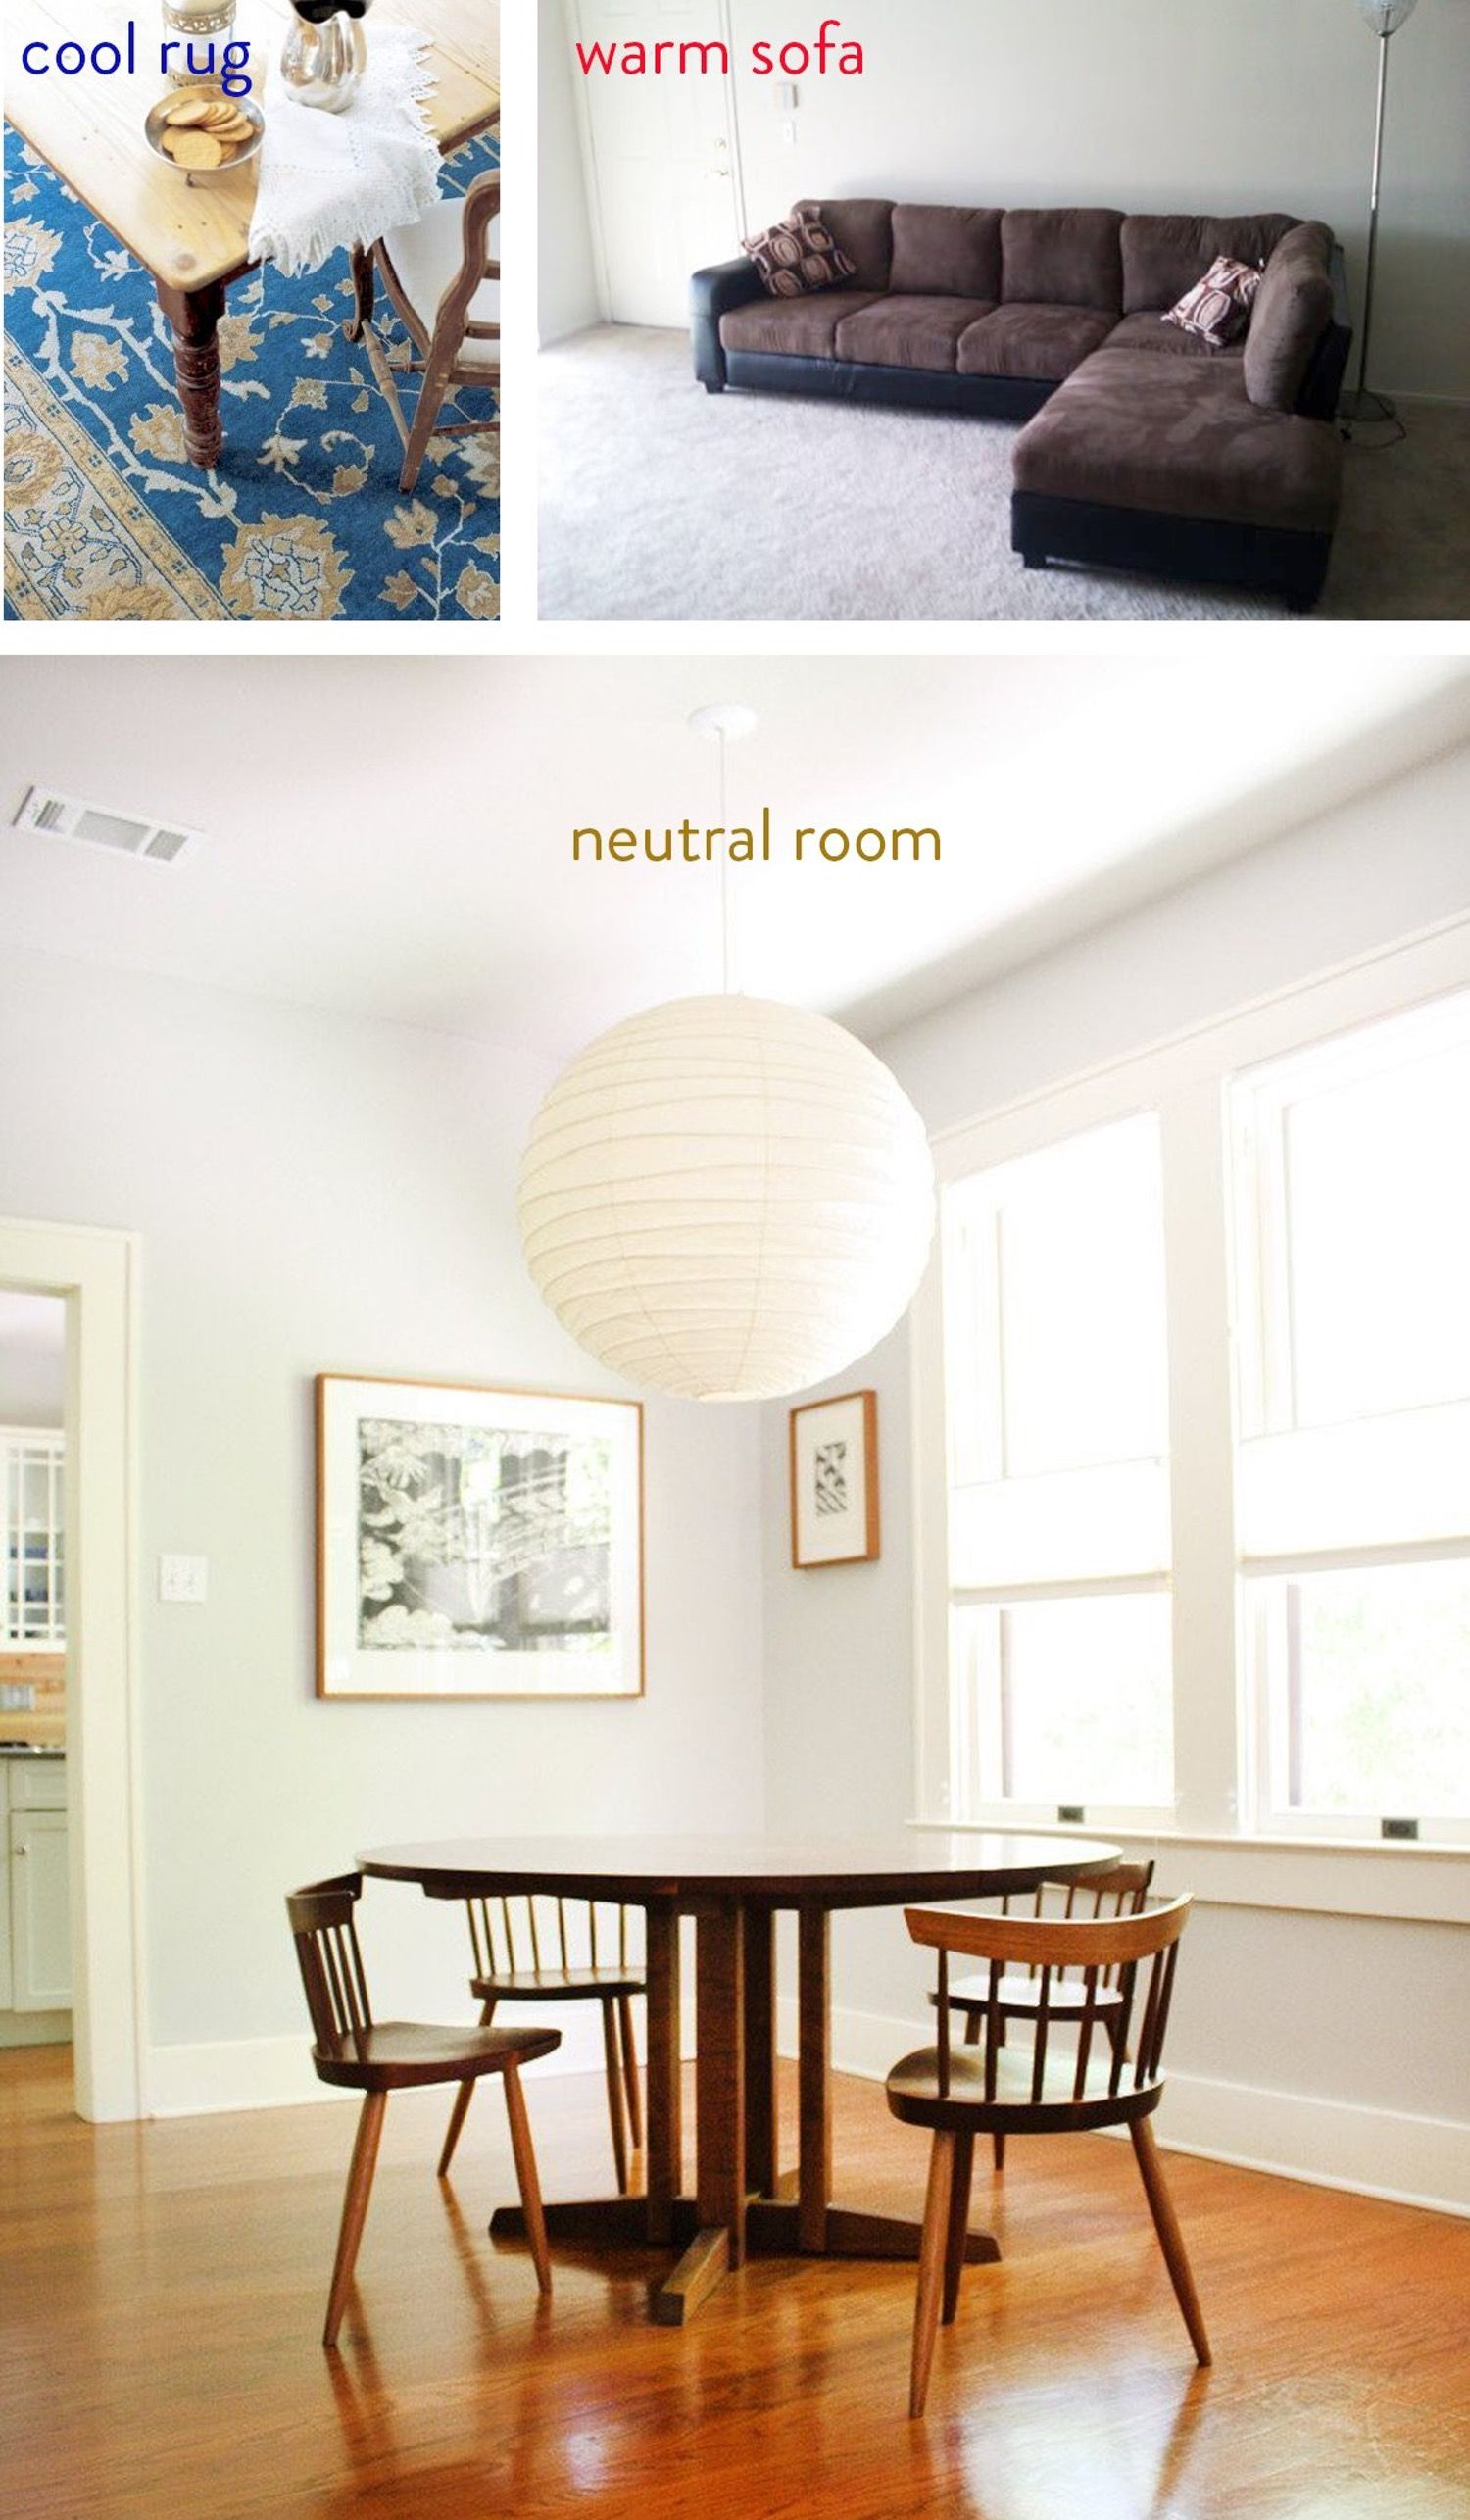 How To Work With Warm & Cool Colors | Warm colors, Living rooms and ...